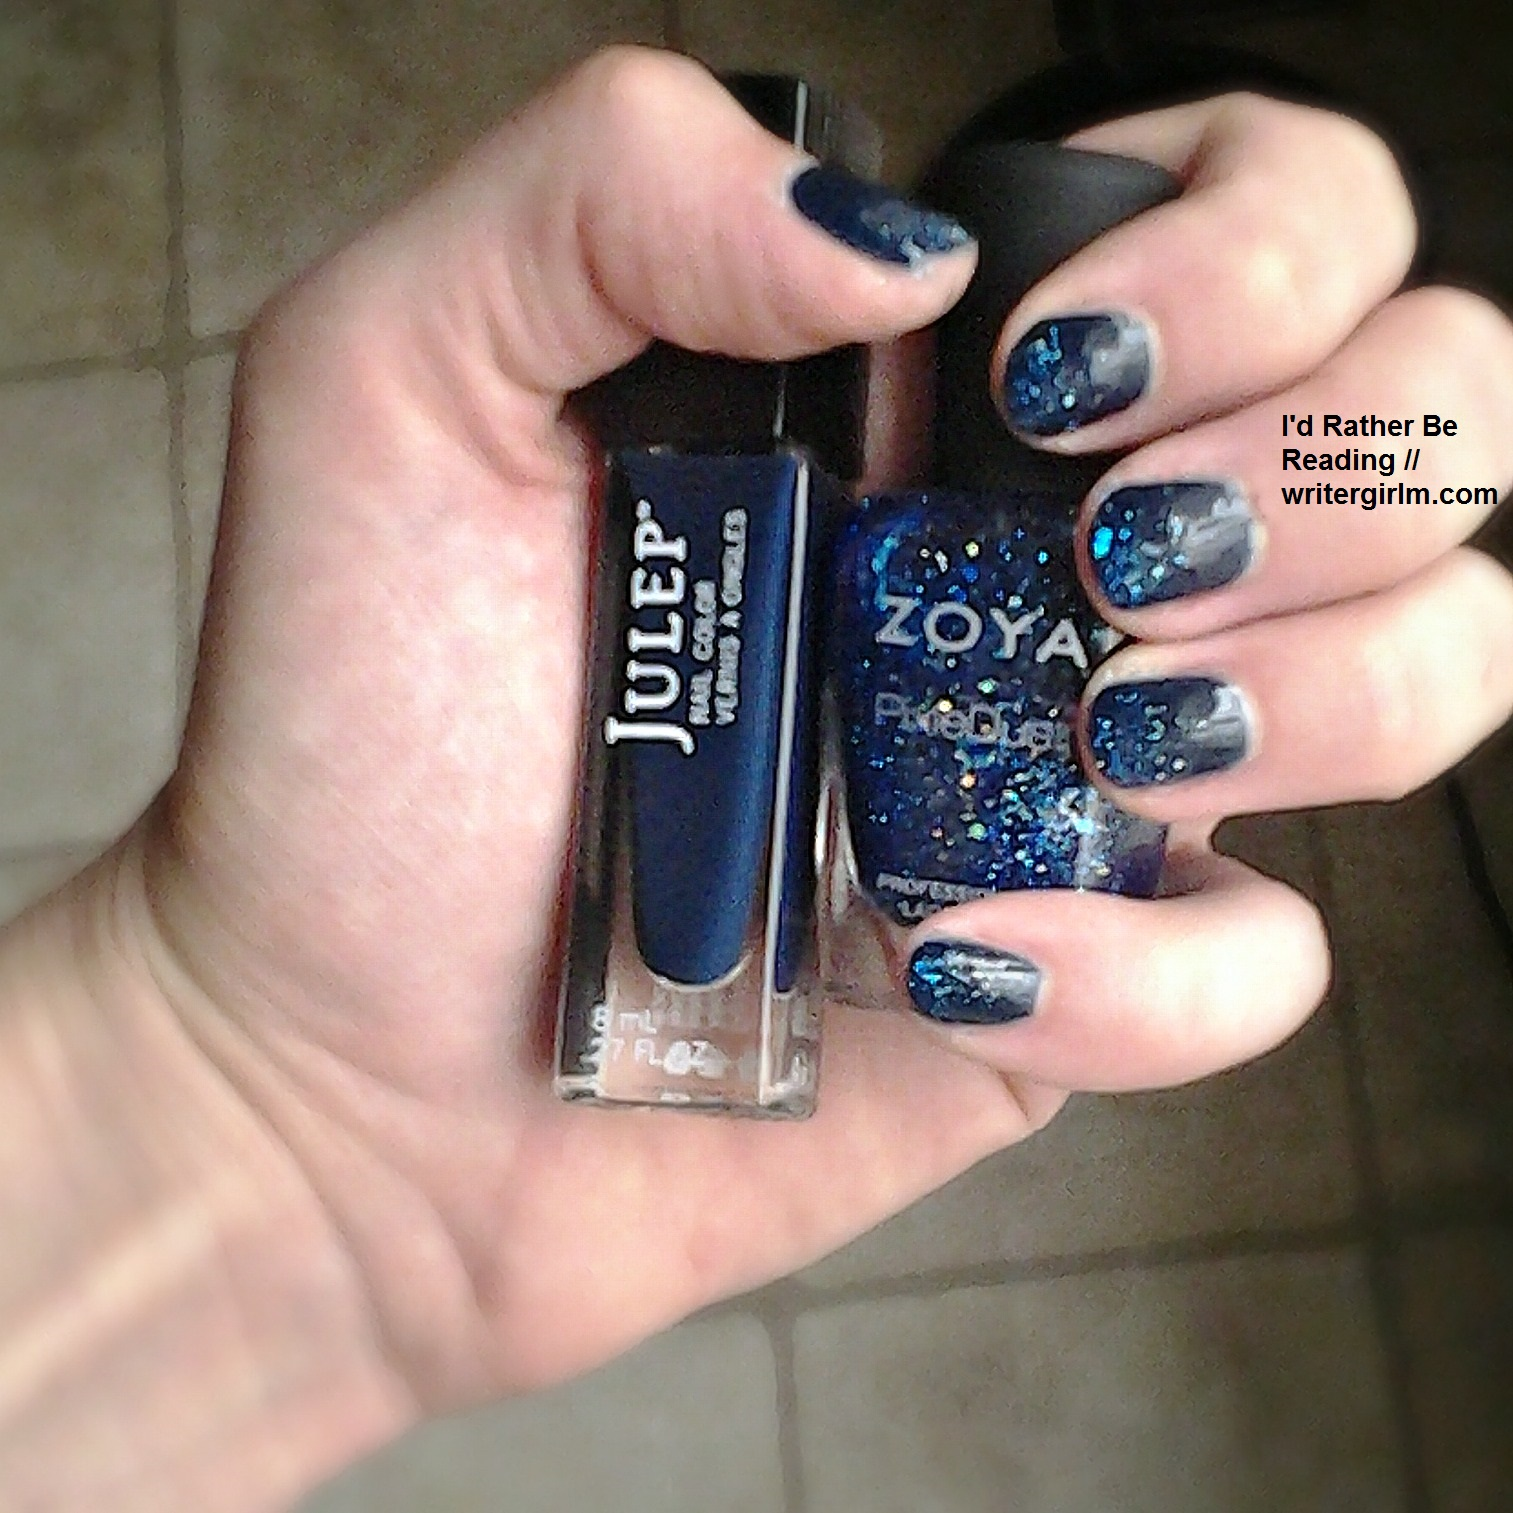 Night sky mani with Julep and Zoya nail polish